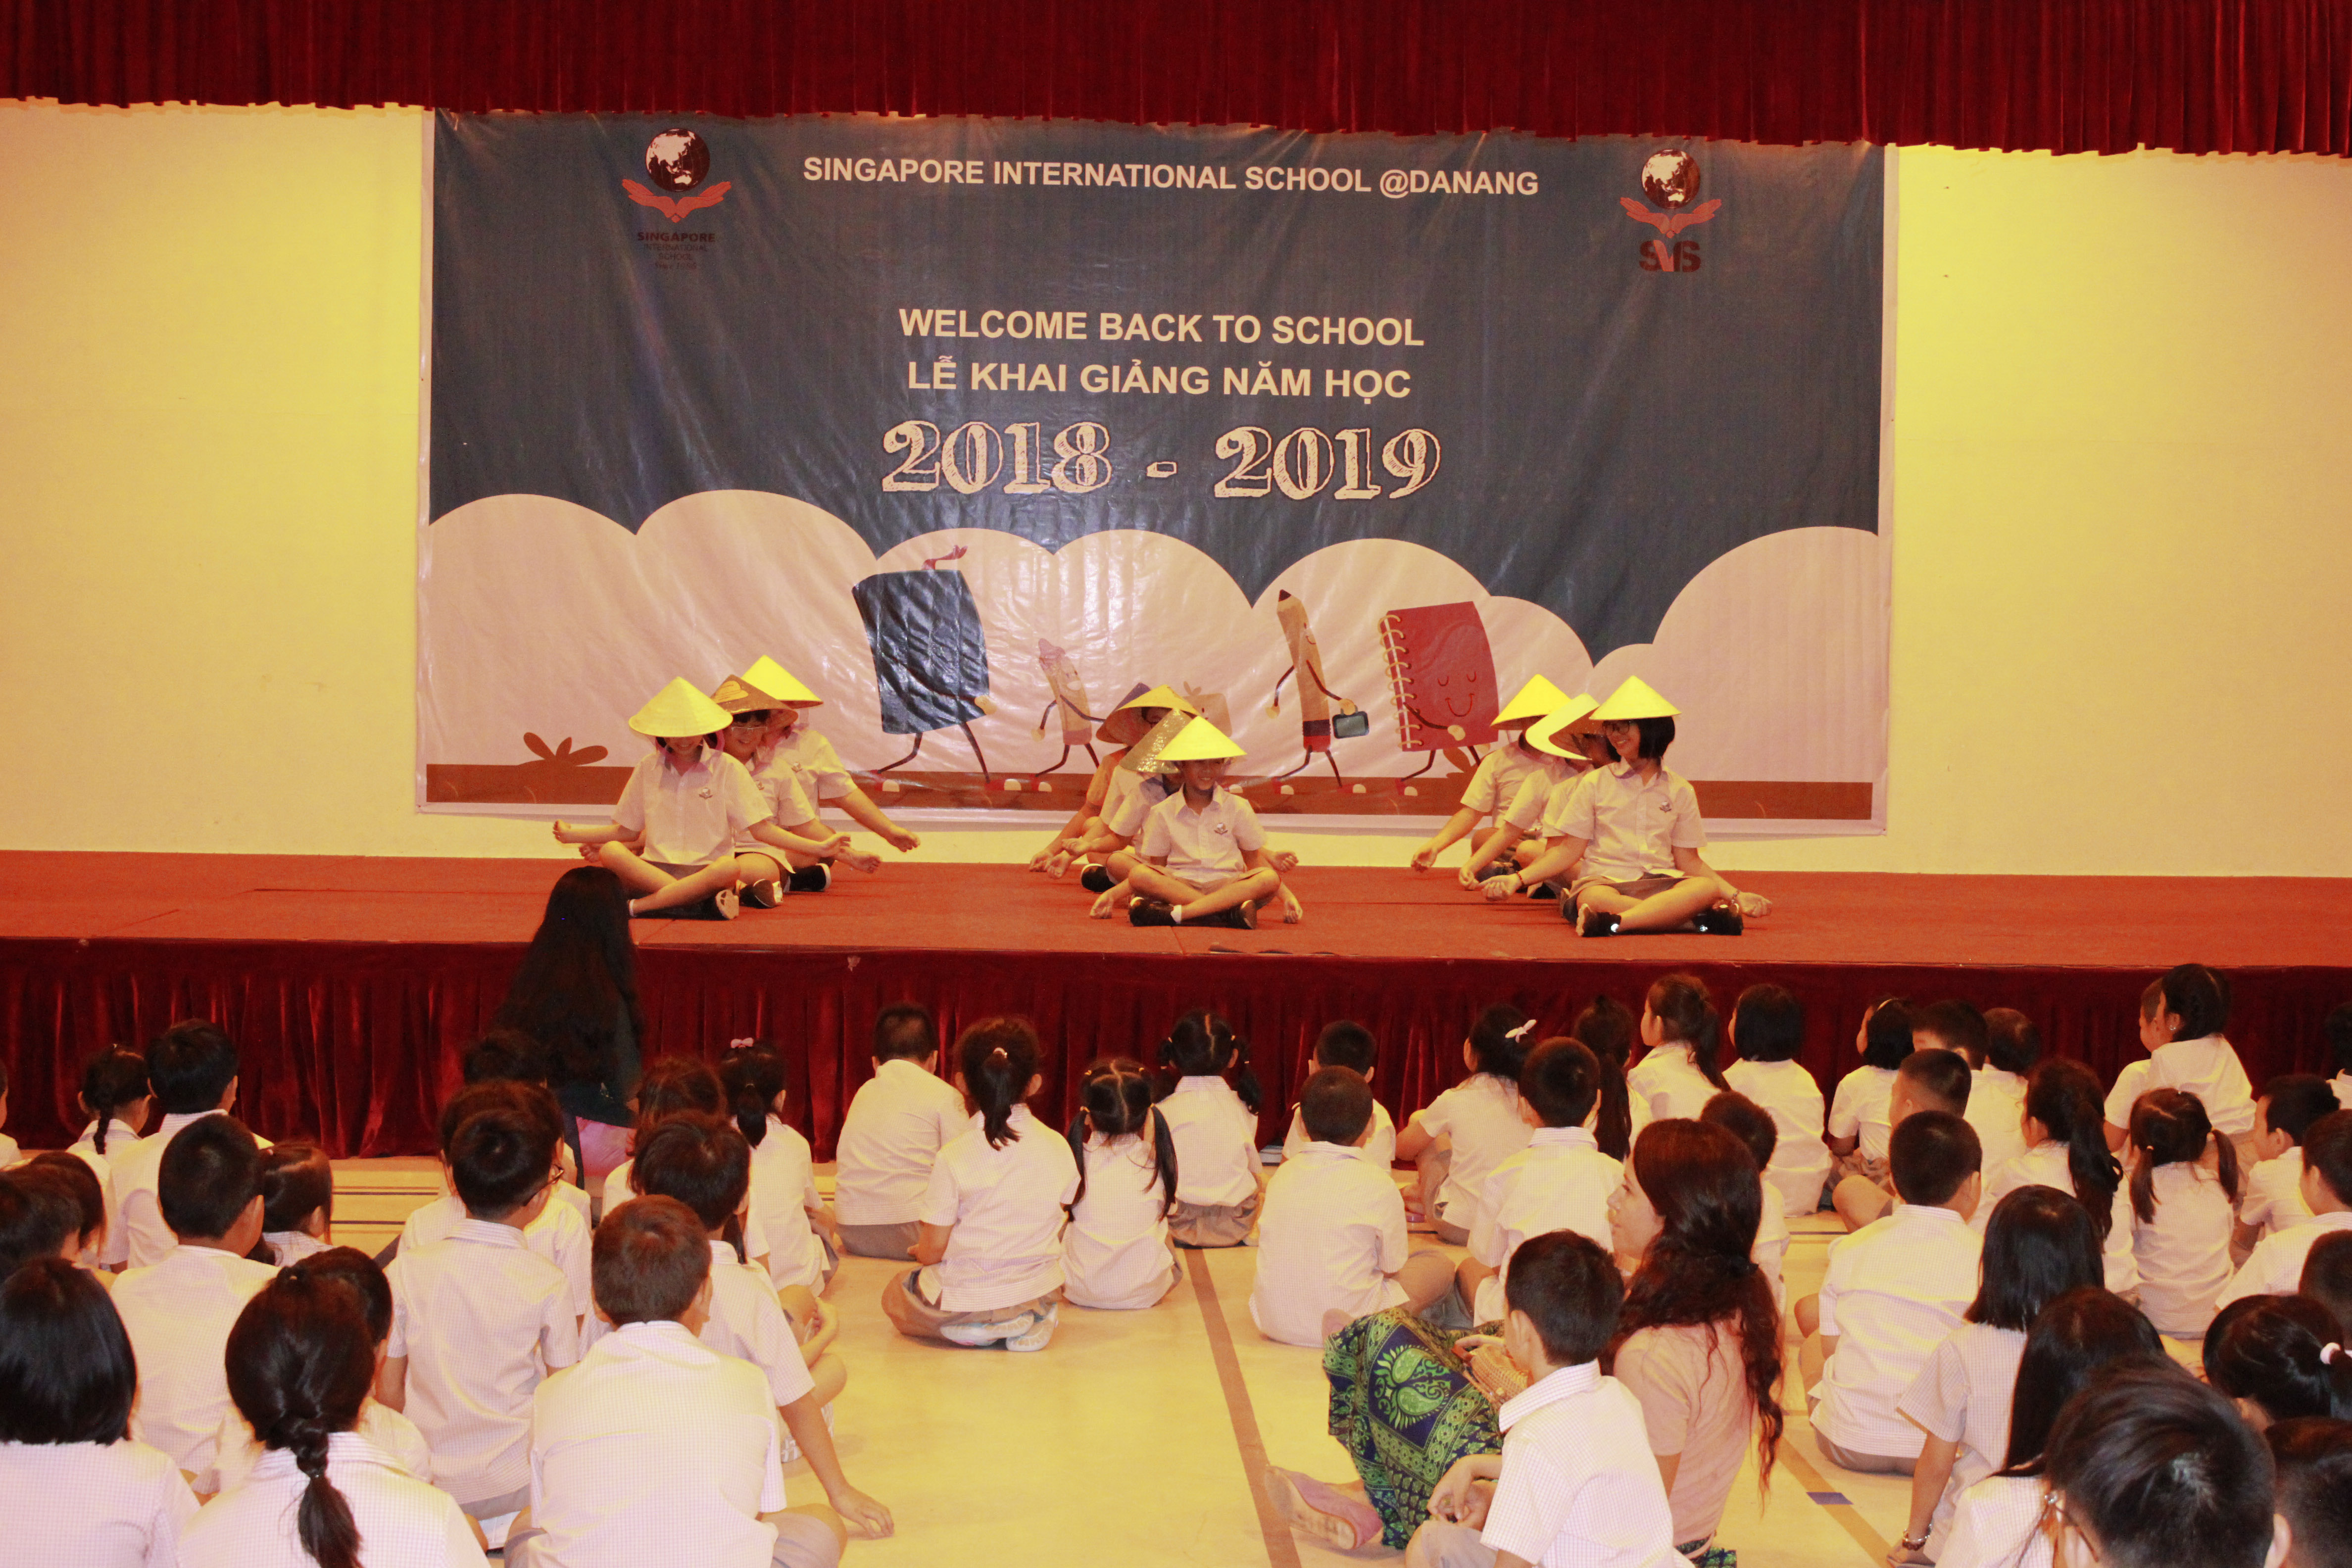 Welcome to the New School Year 2018 – 2019 at SIS@Danang